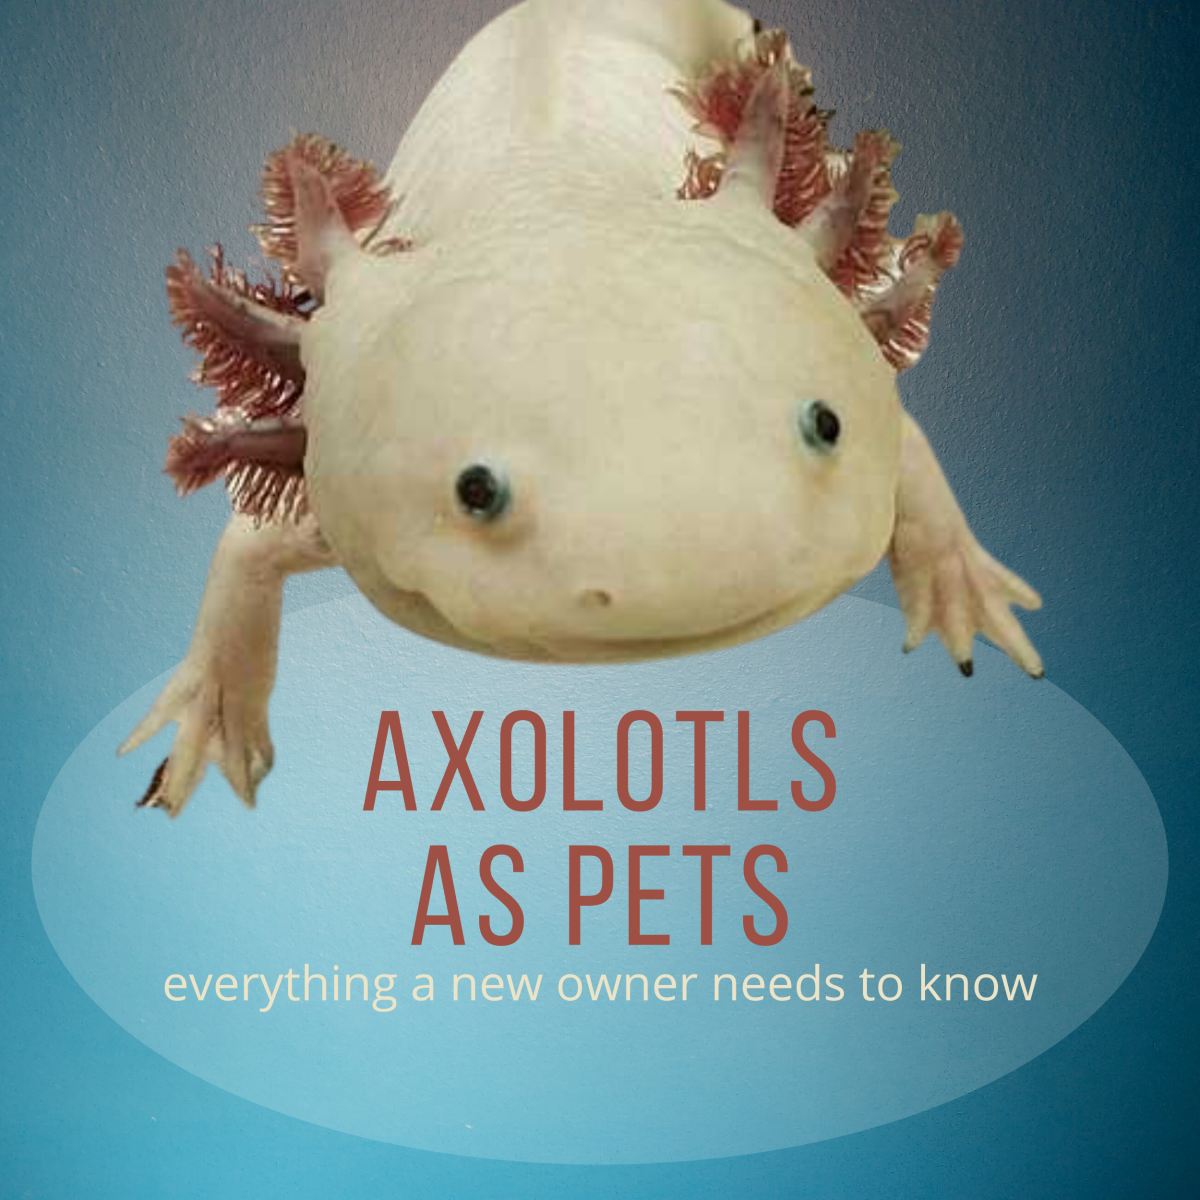 Everything About Axolotls, a Basic Guide for New Owners